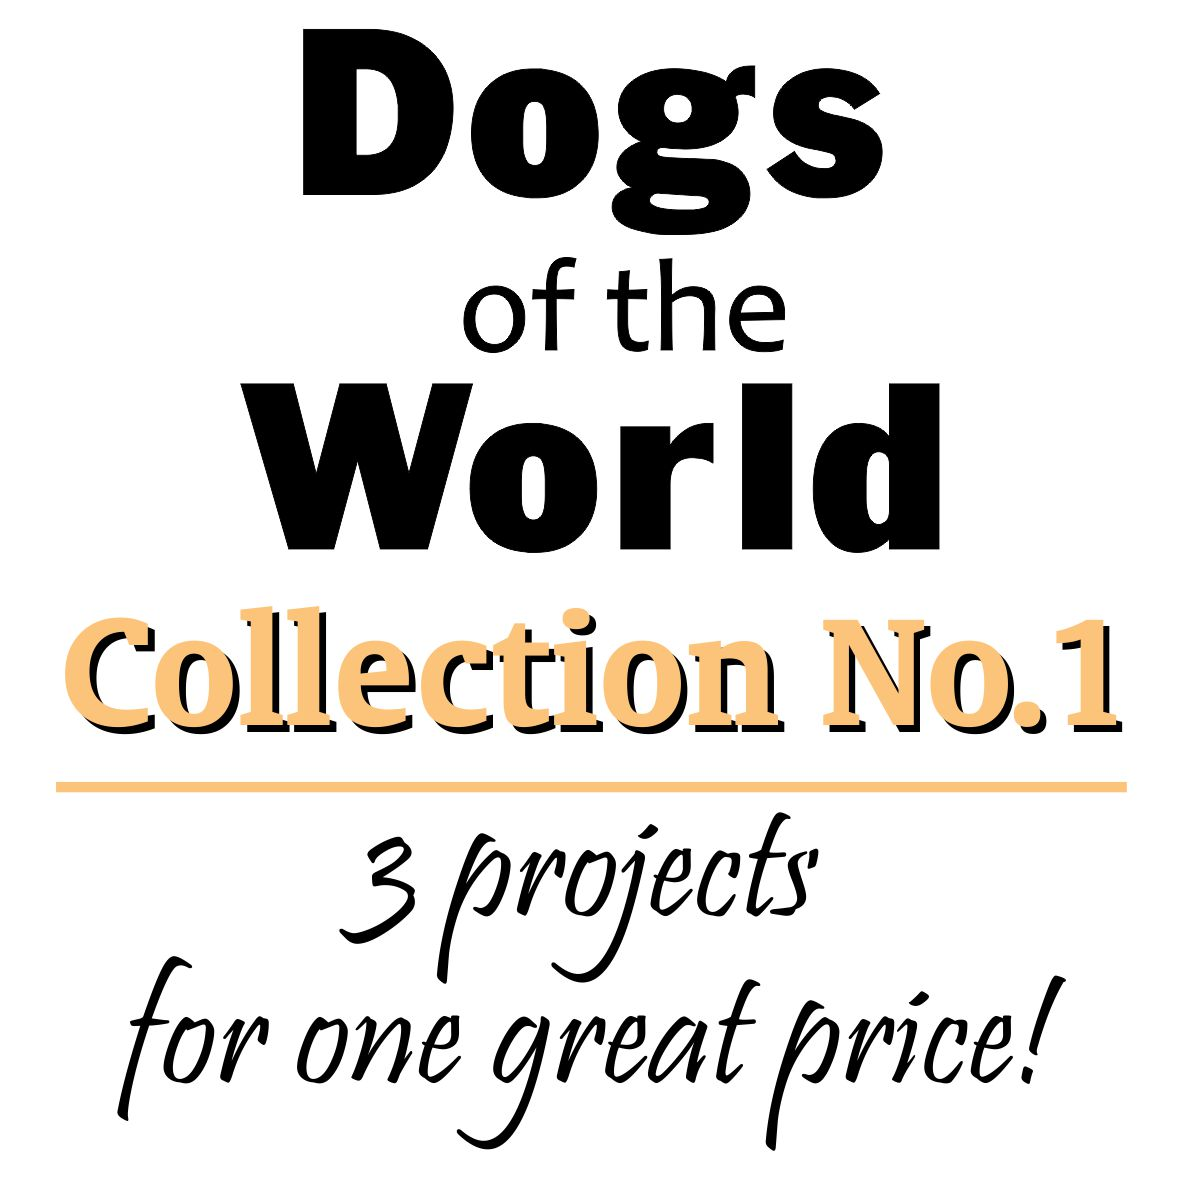 Dogs of the World Collection No.1